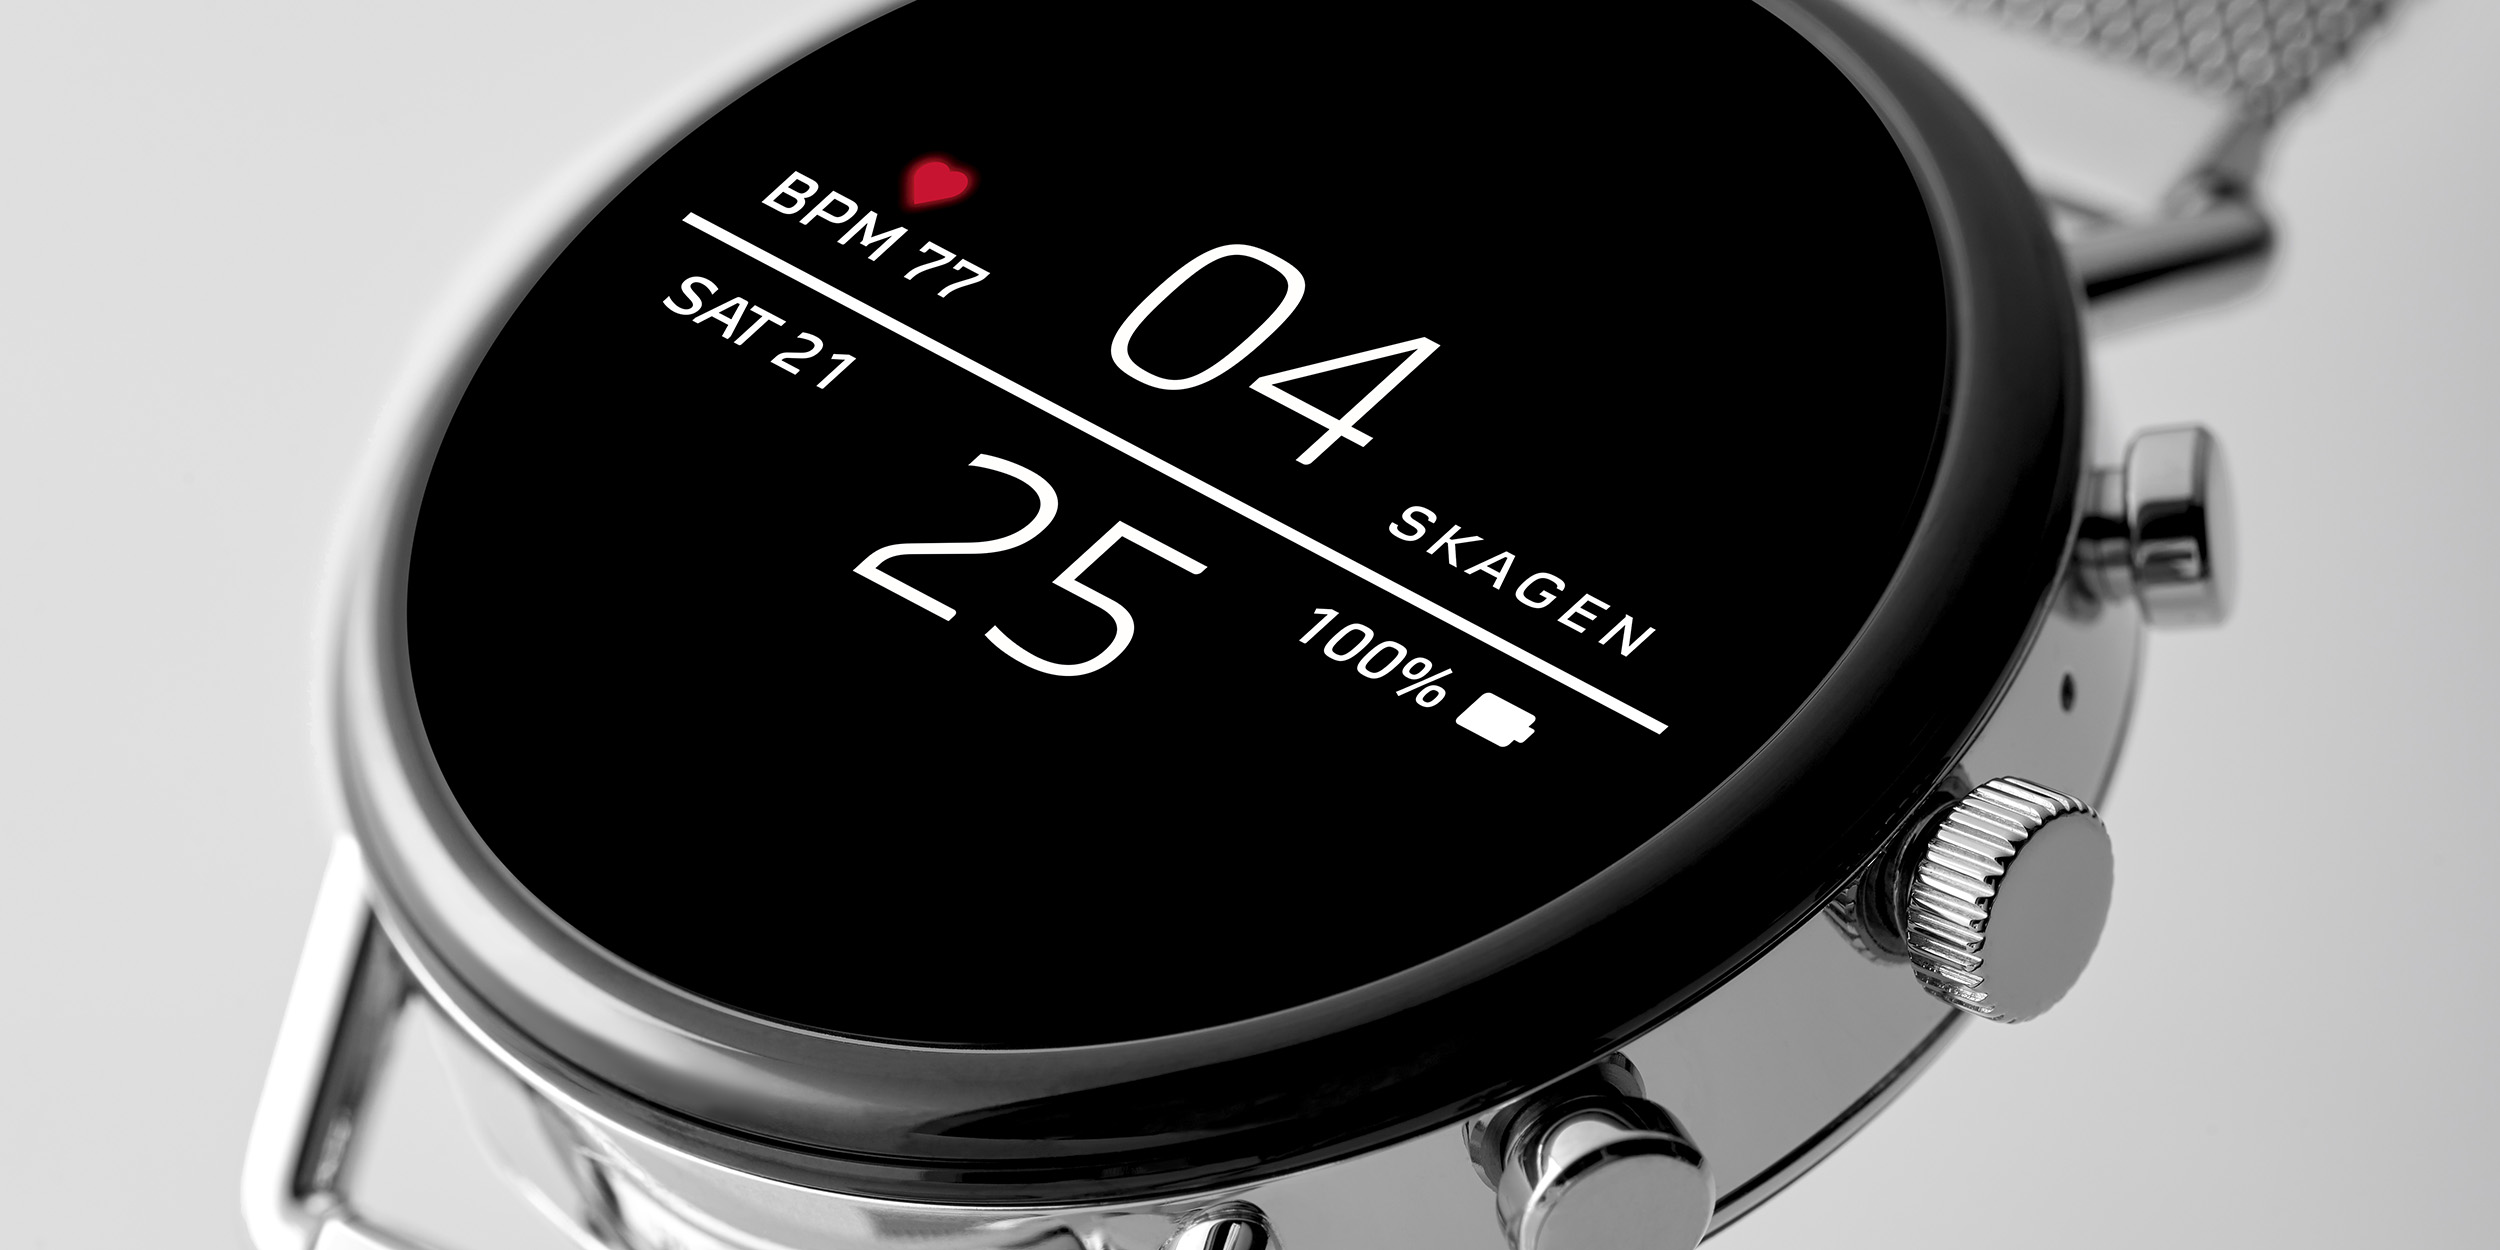 Best smartwatches for Android you can buy [September 2018] - 9to5Google